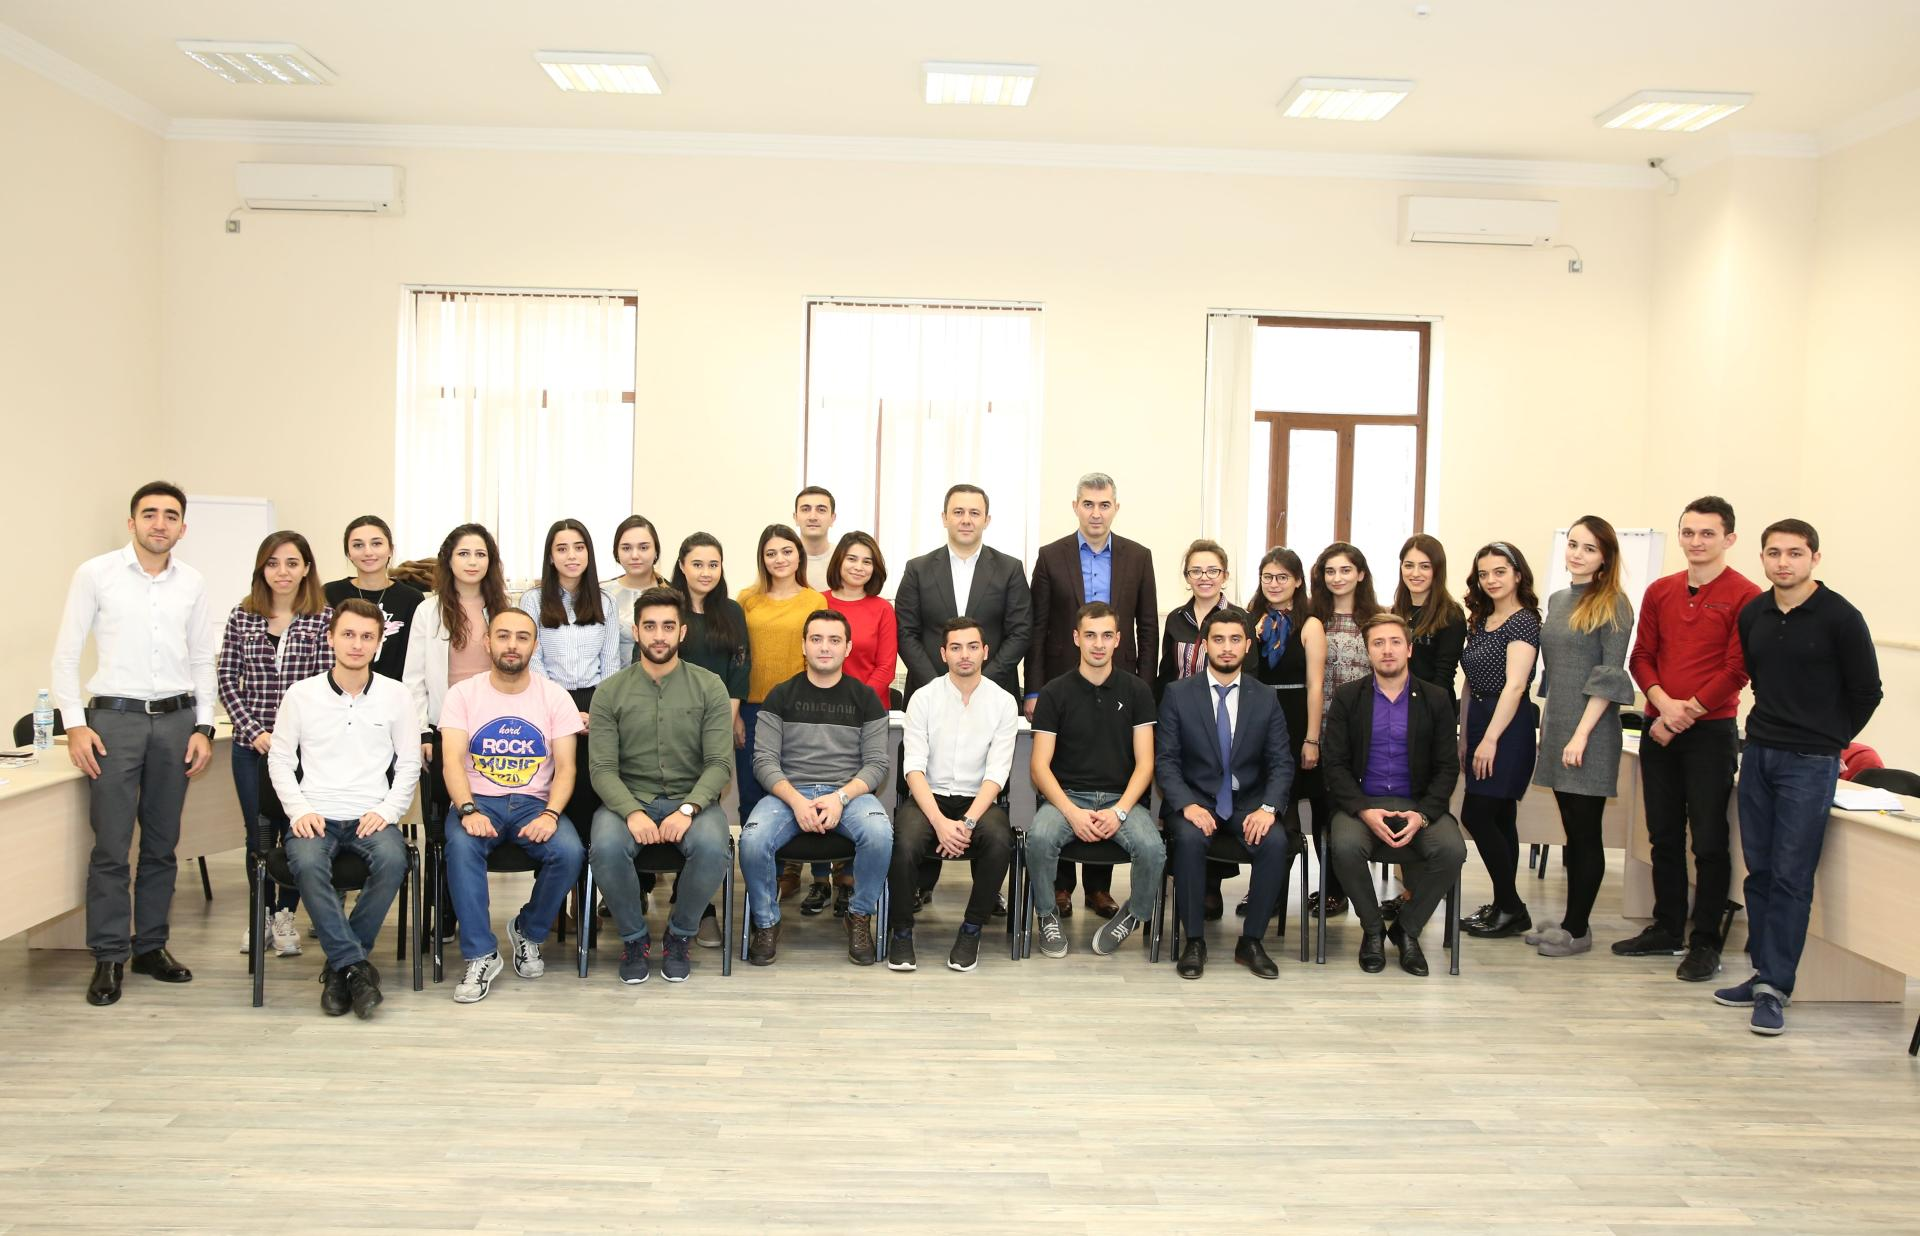 MBA students at BHOS taught by professional managers (PHOTO)